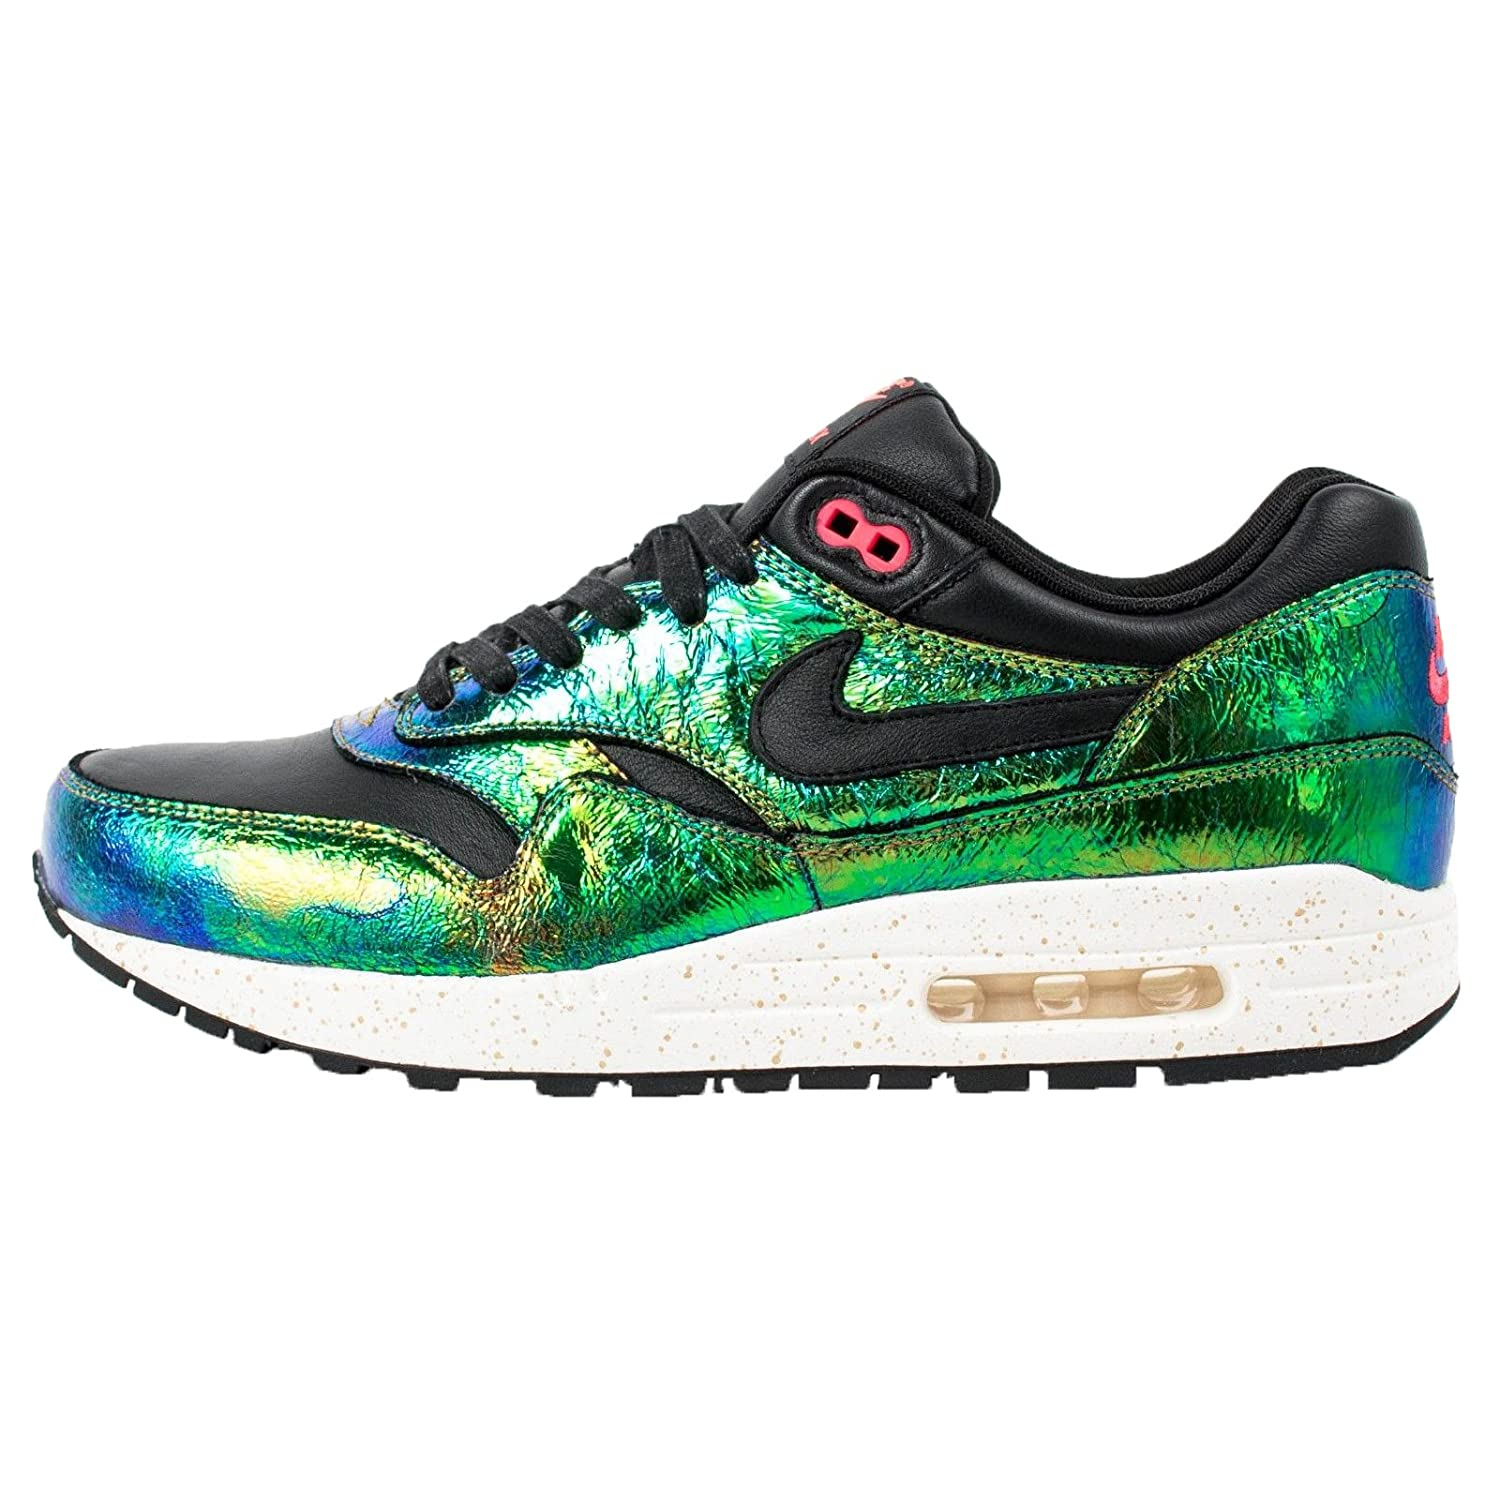 Nike Mens Air Max 1 Sup QS Trophy Leather Athletic Sneakers